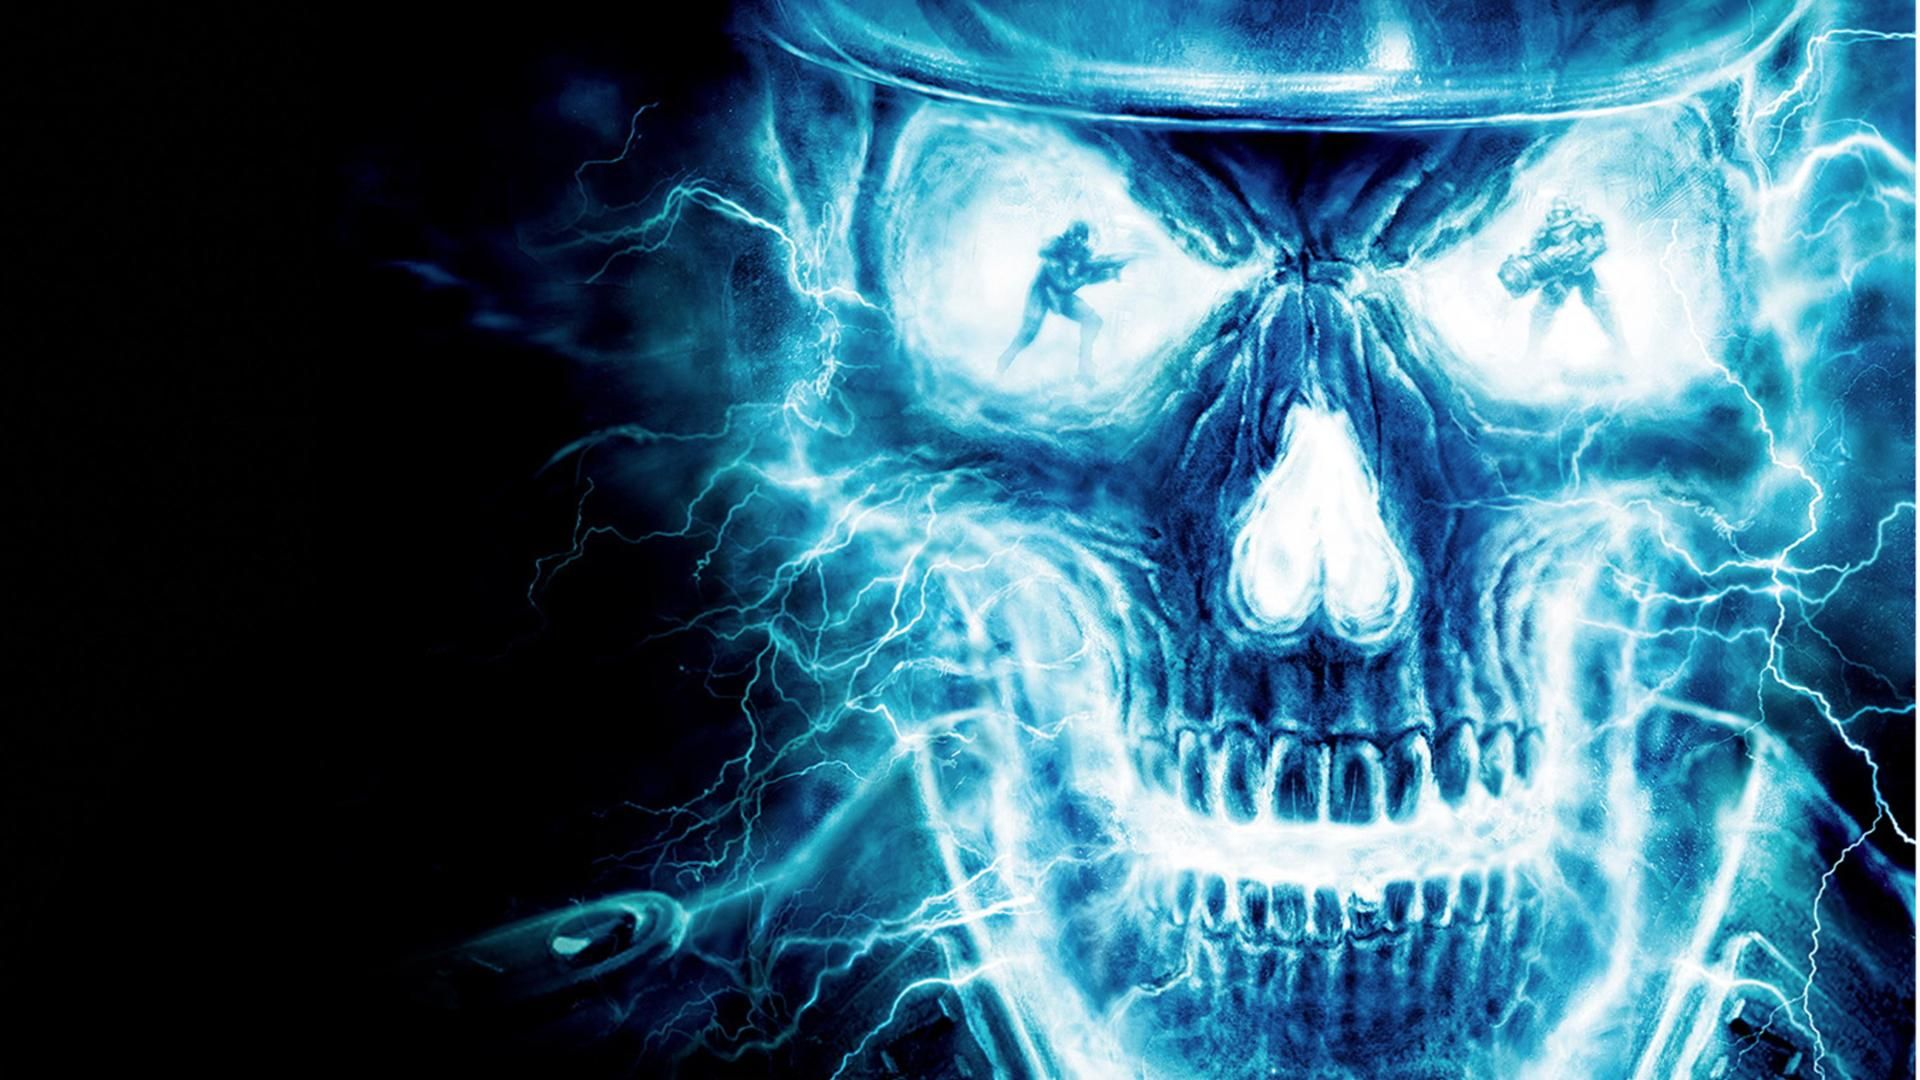 Blue Skull Wallpapers Wallpaper